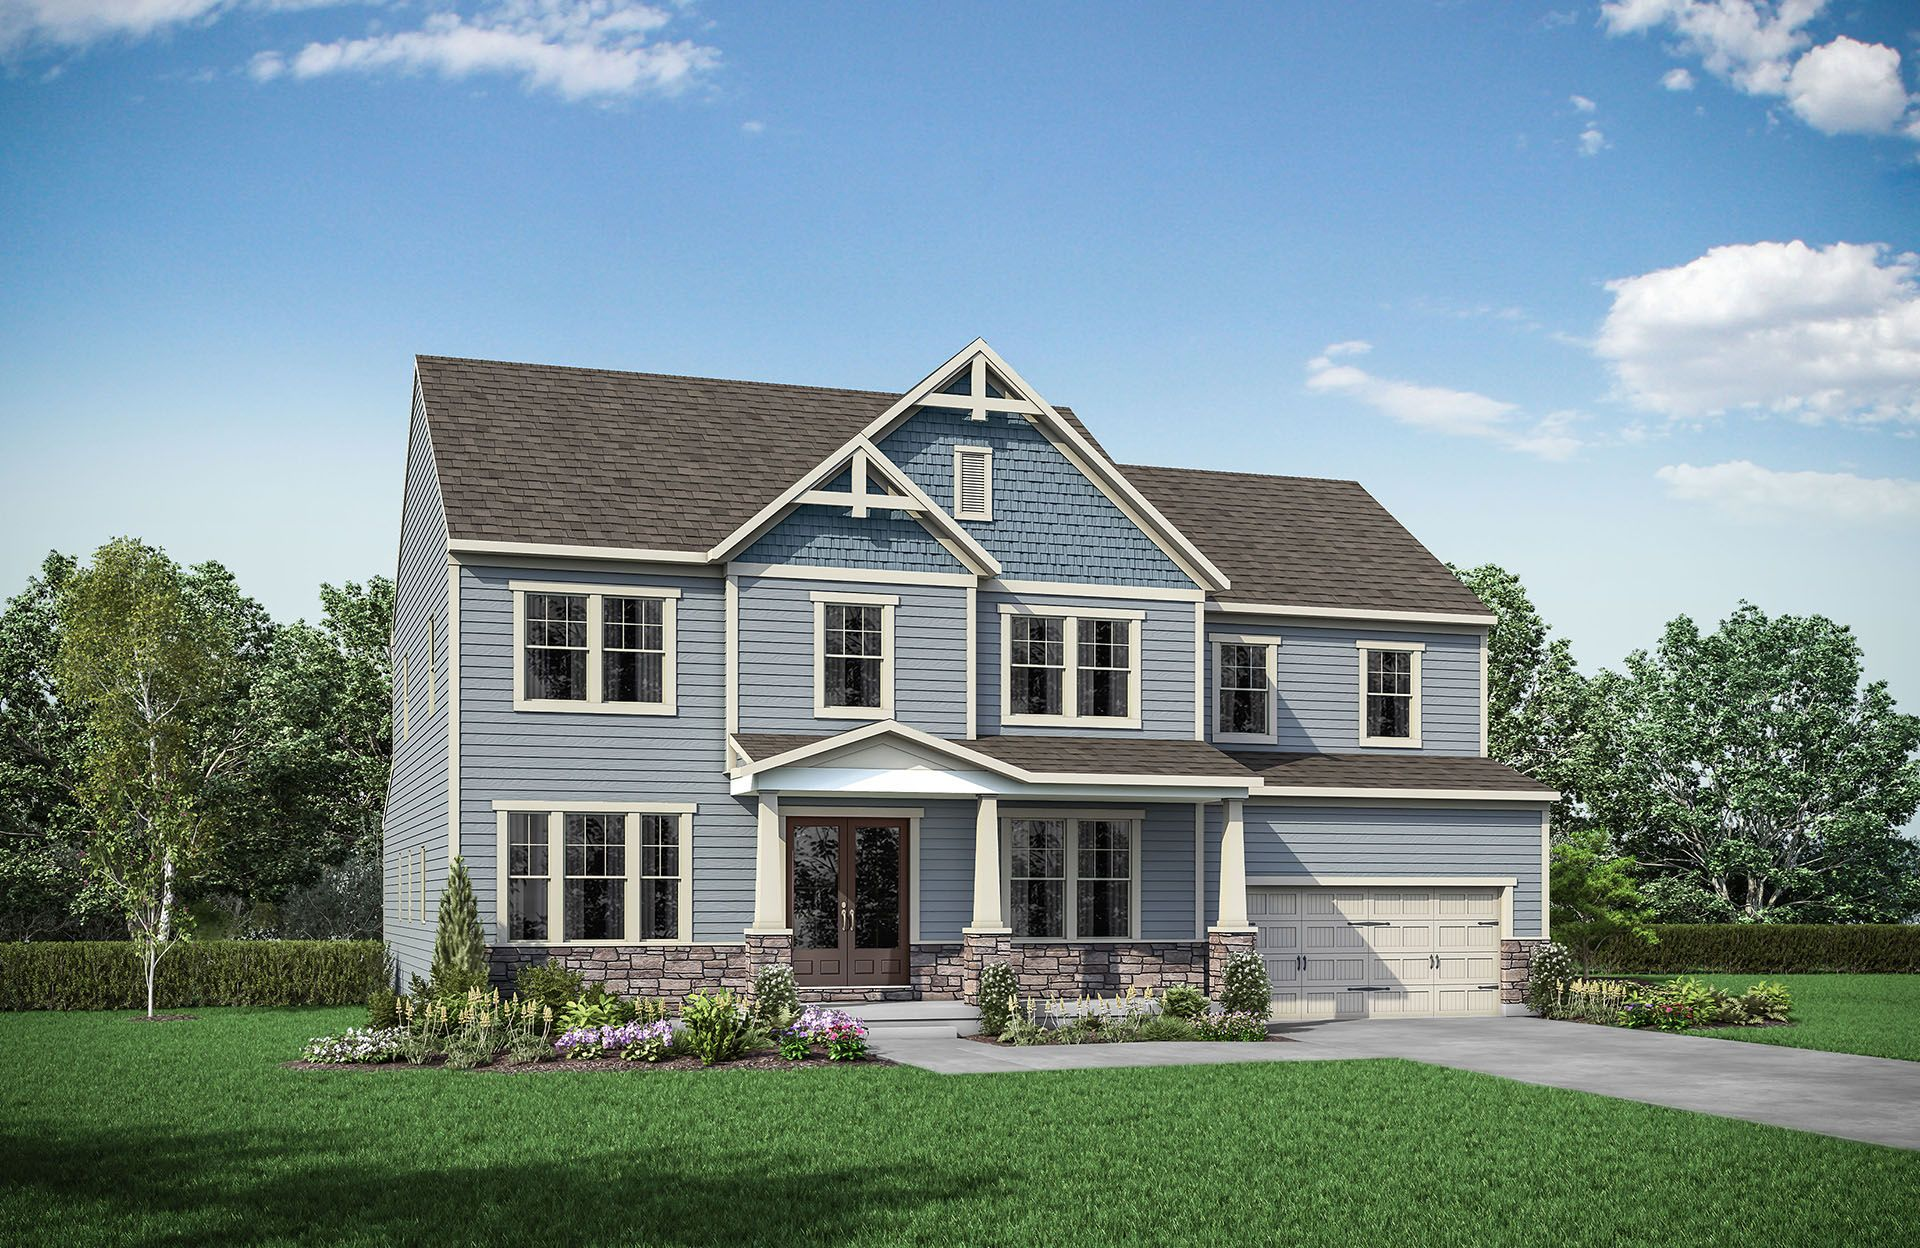 Single Family for Active at Virginia Crossing - Sherwood 7001 Saint Hill Court Haymarket, Virginia 20169 United States